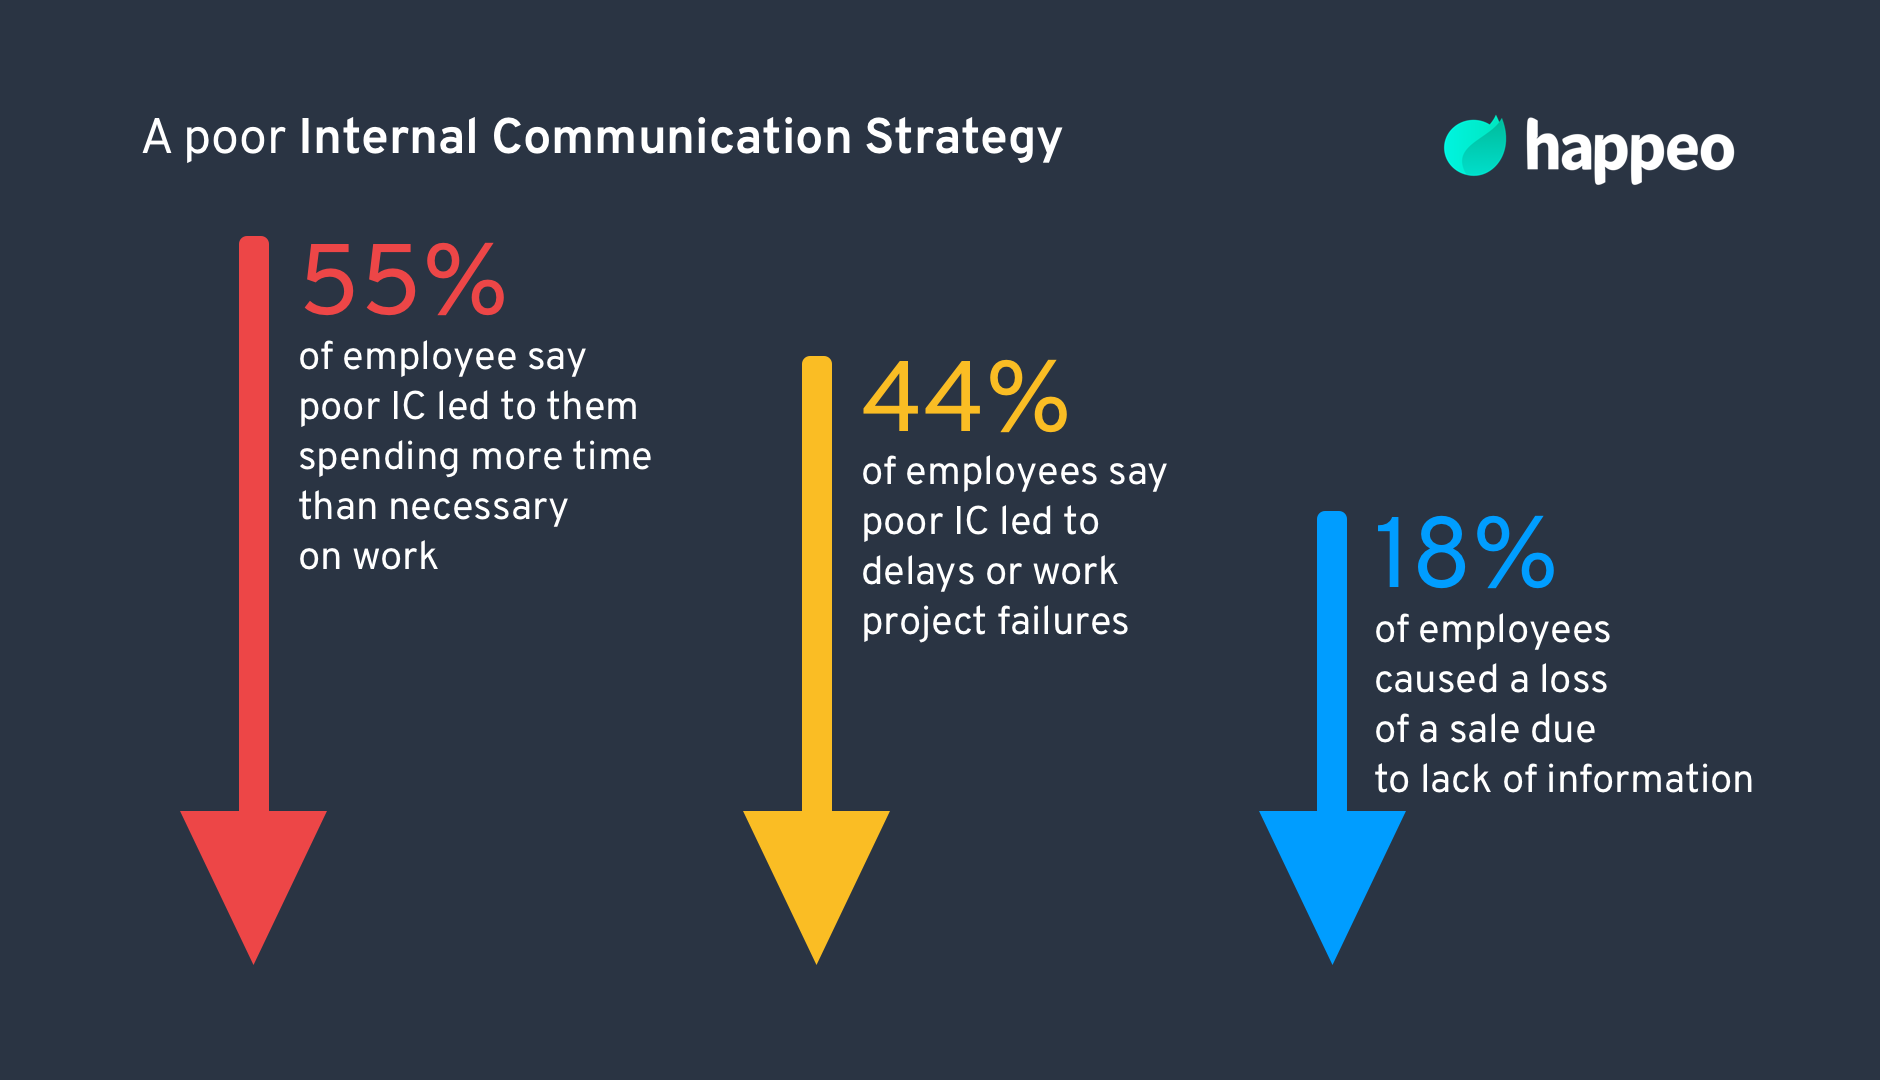 Poor internal communication strategy